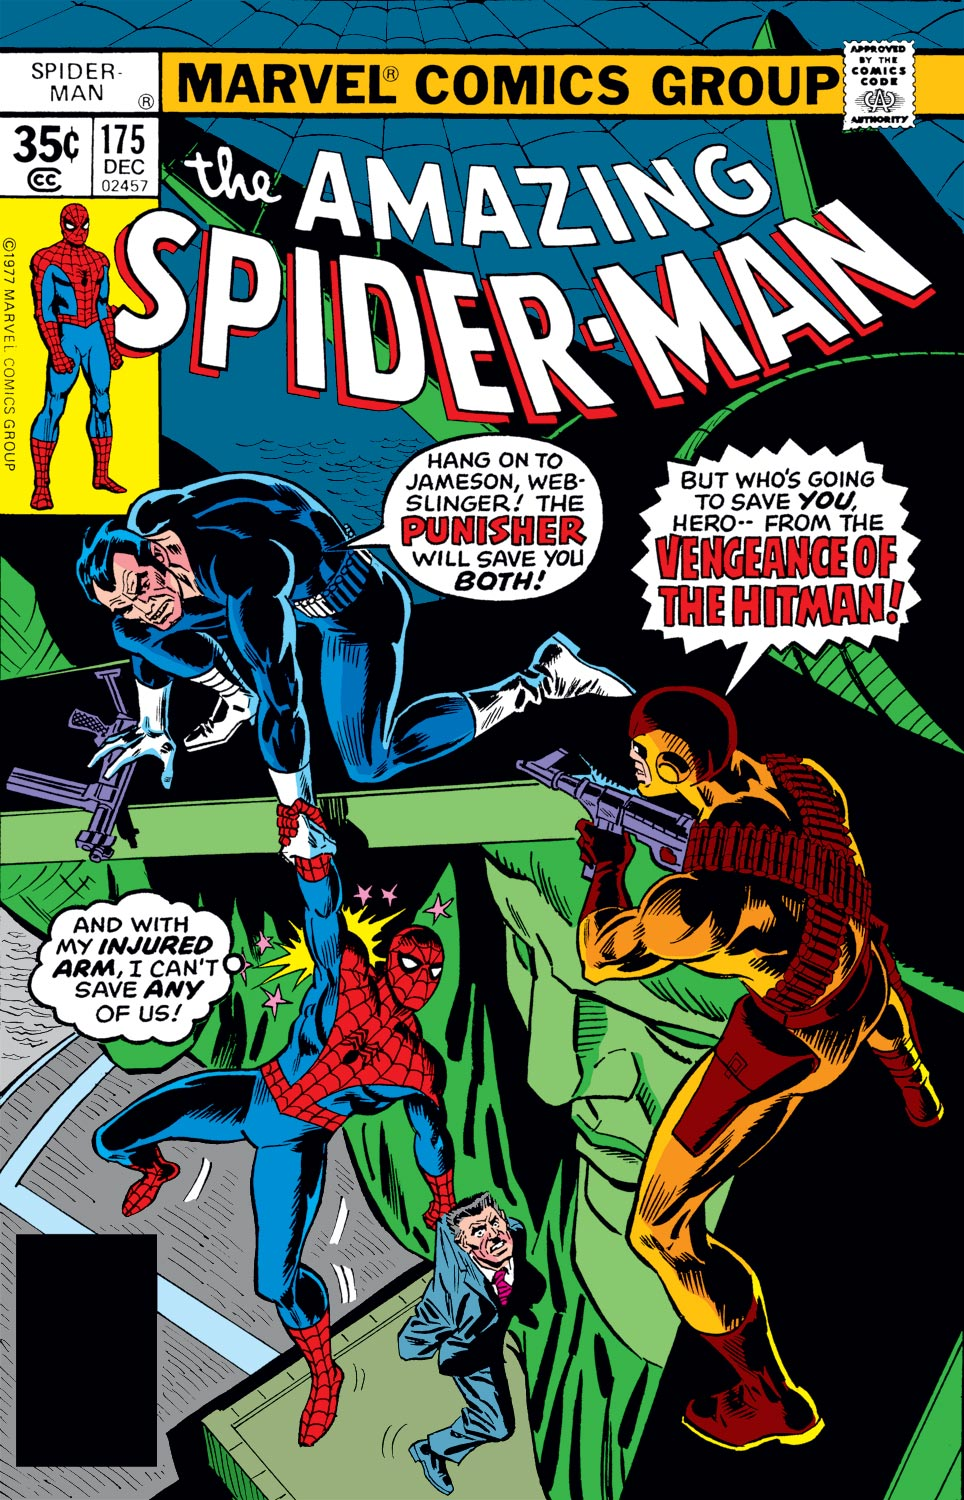 The Amazing Spider-Man (1963) #175